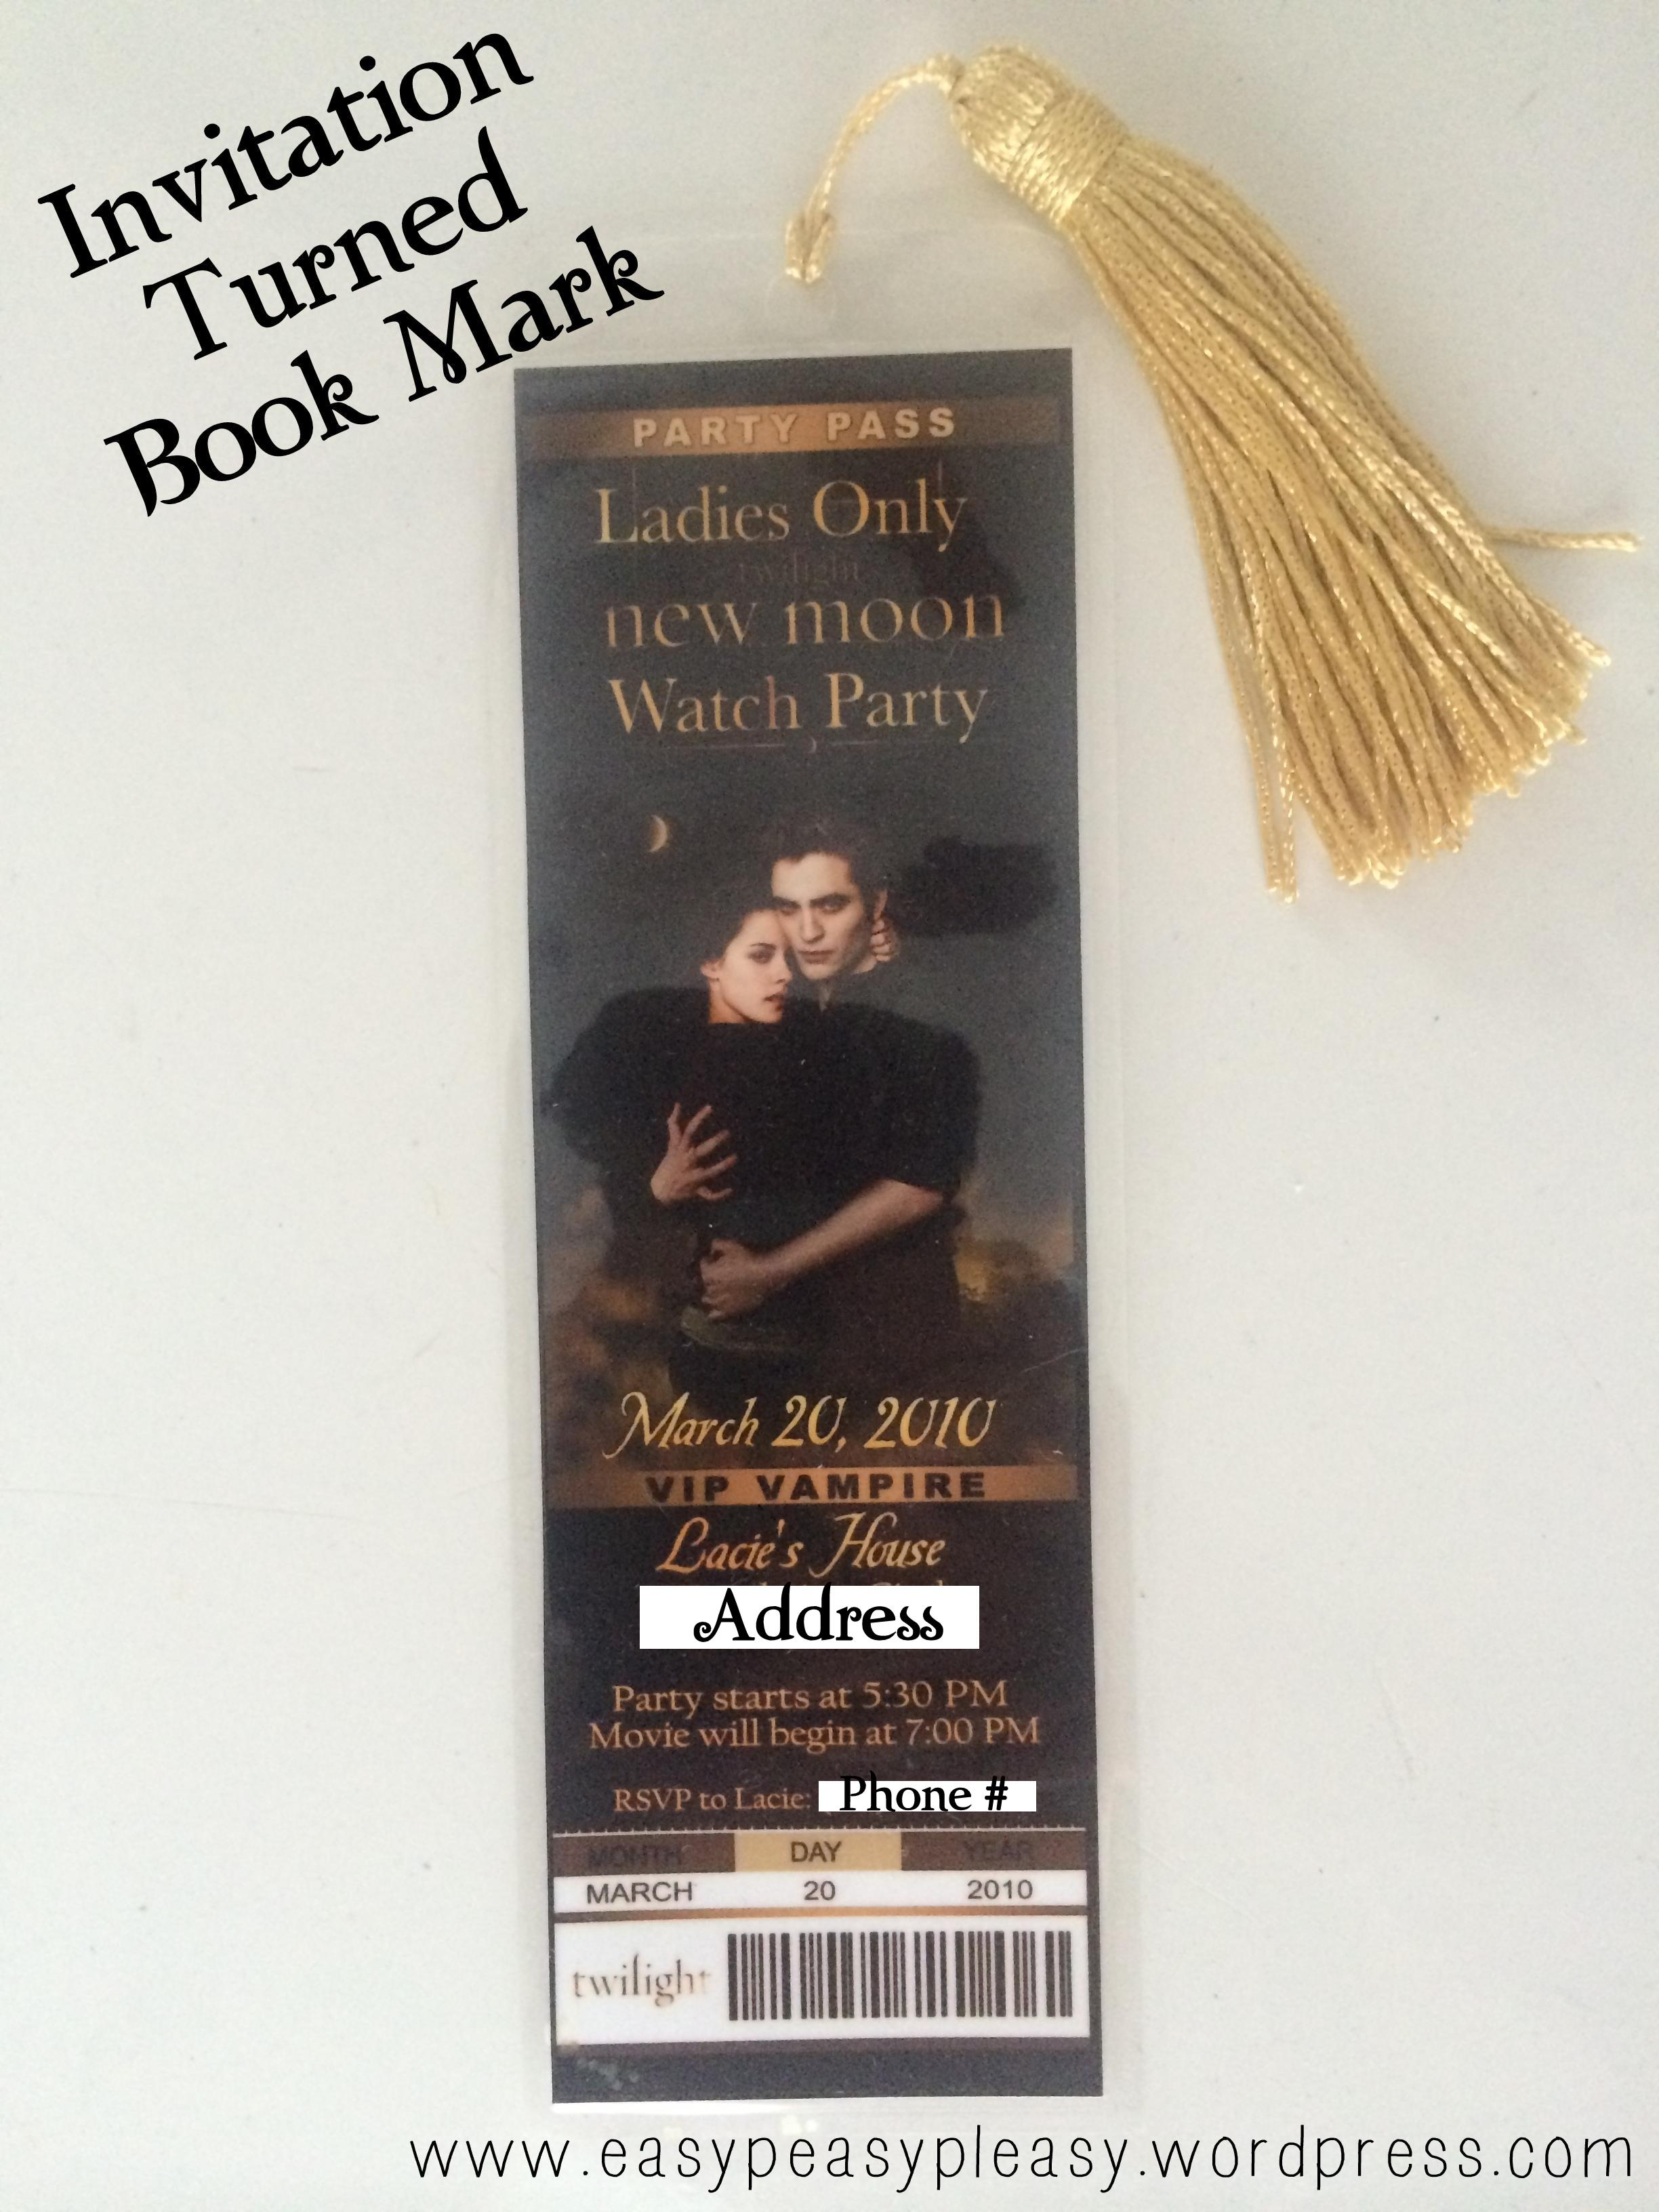 Twilight New Moon Party Invitation turned into a Book Mark 1